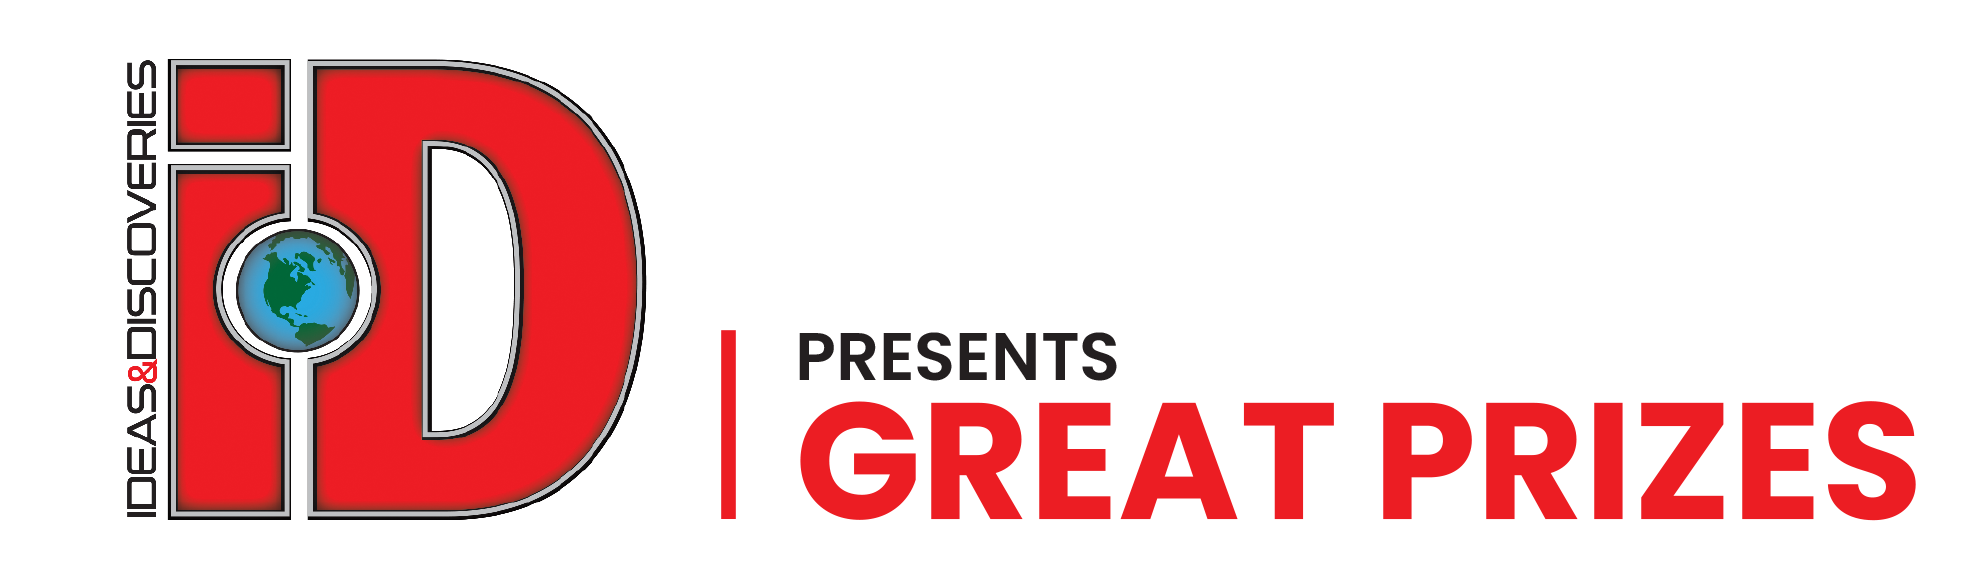 Id great wins logo  1